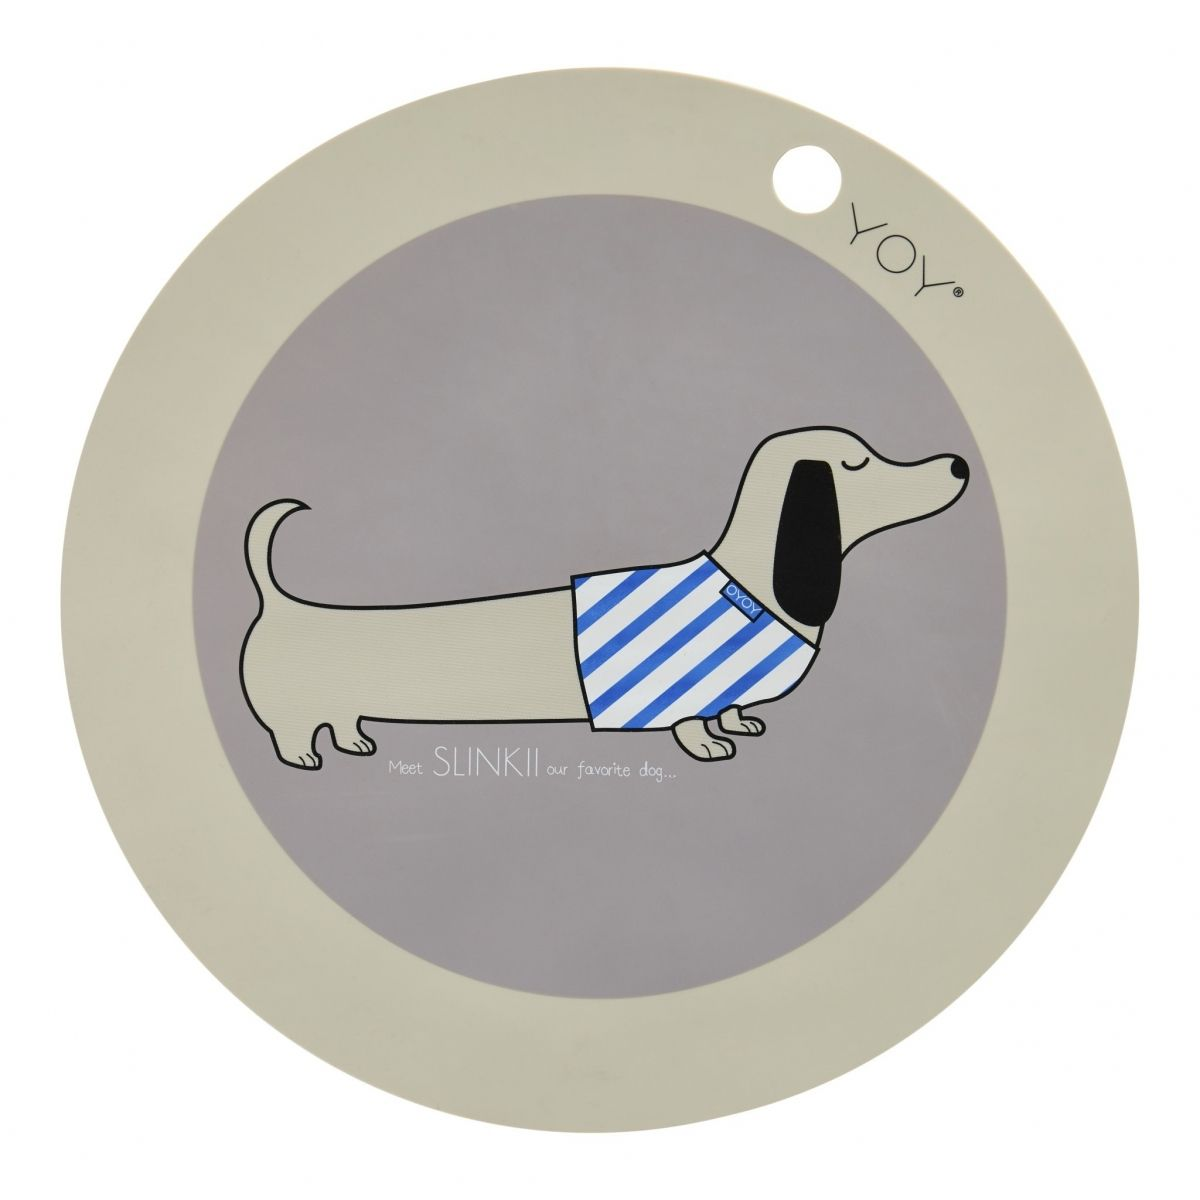 OYOY Placemate Dog Slinkii